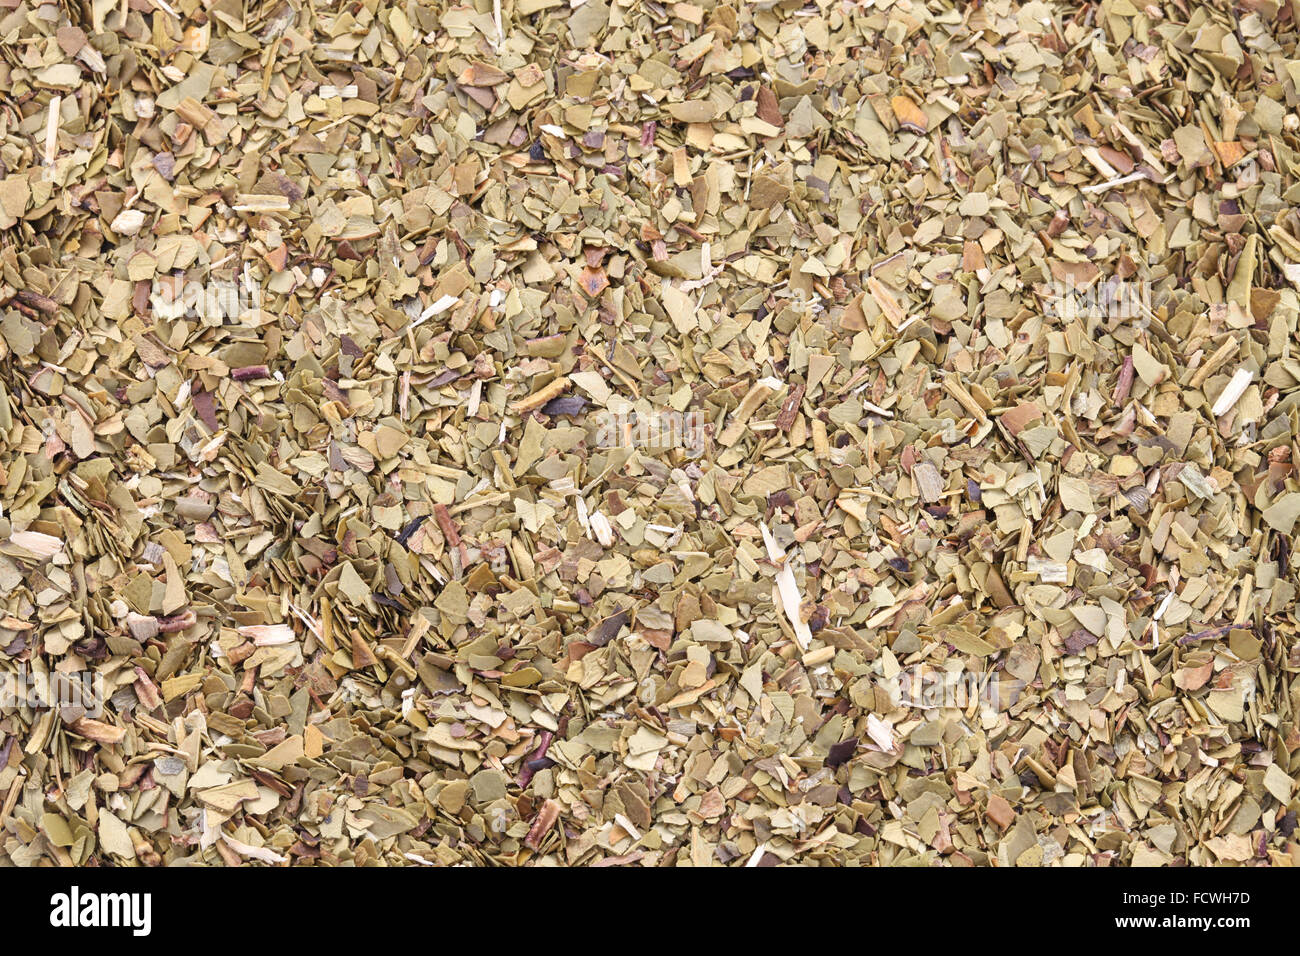 roasted mate tea leaves, close up shot - Stock Image